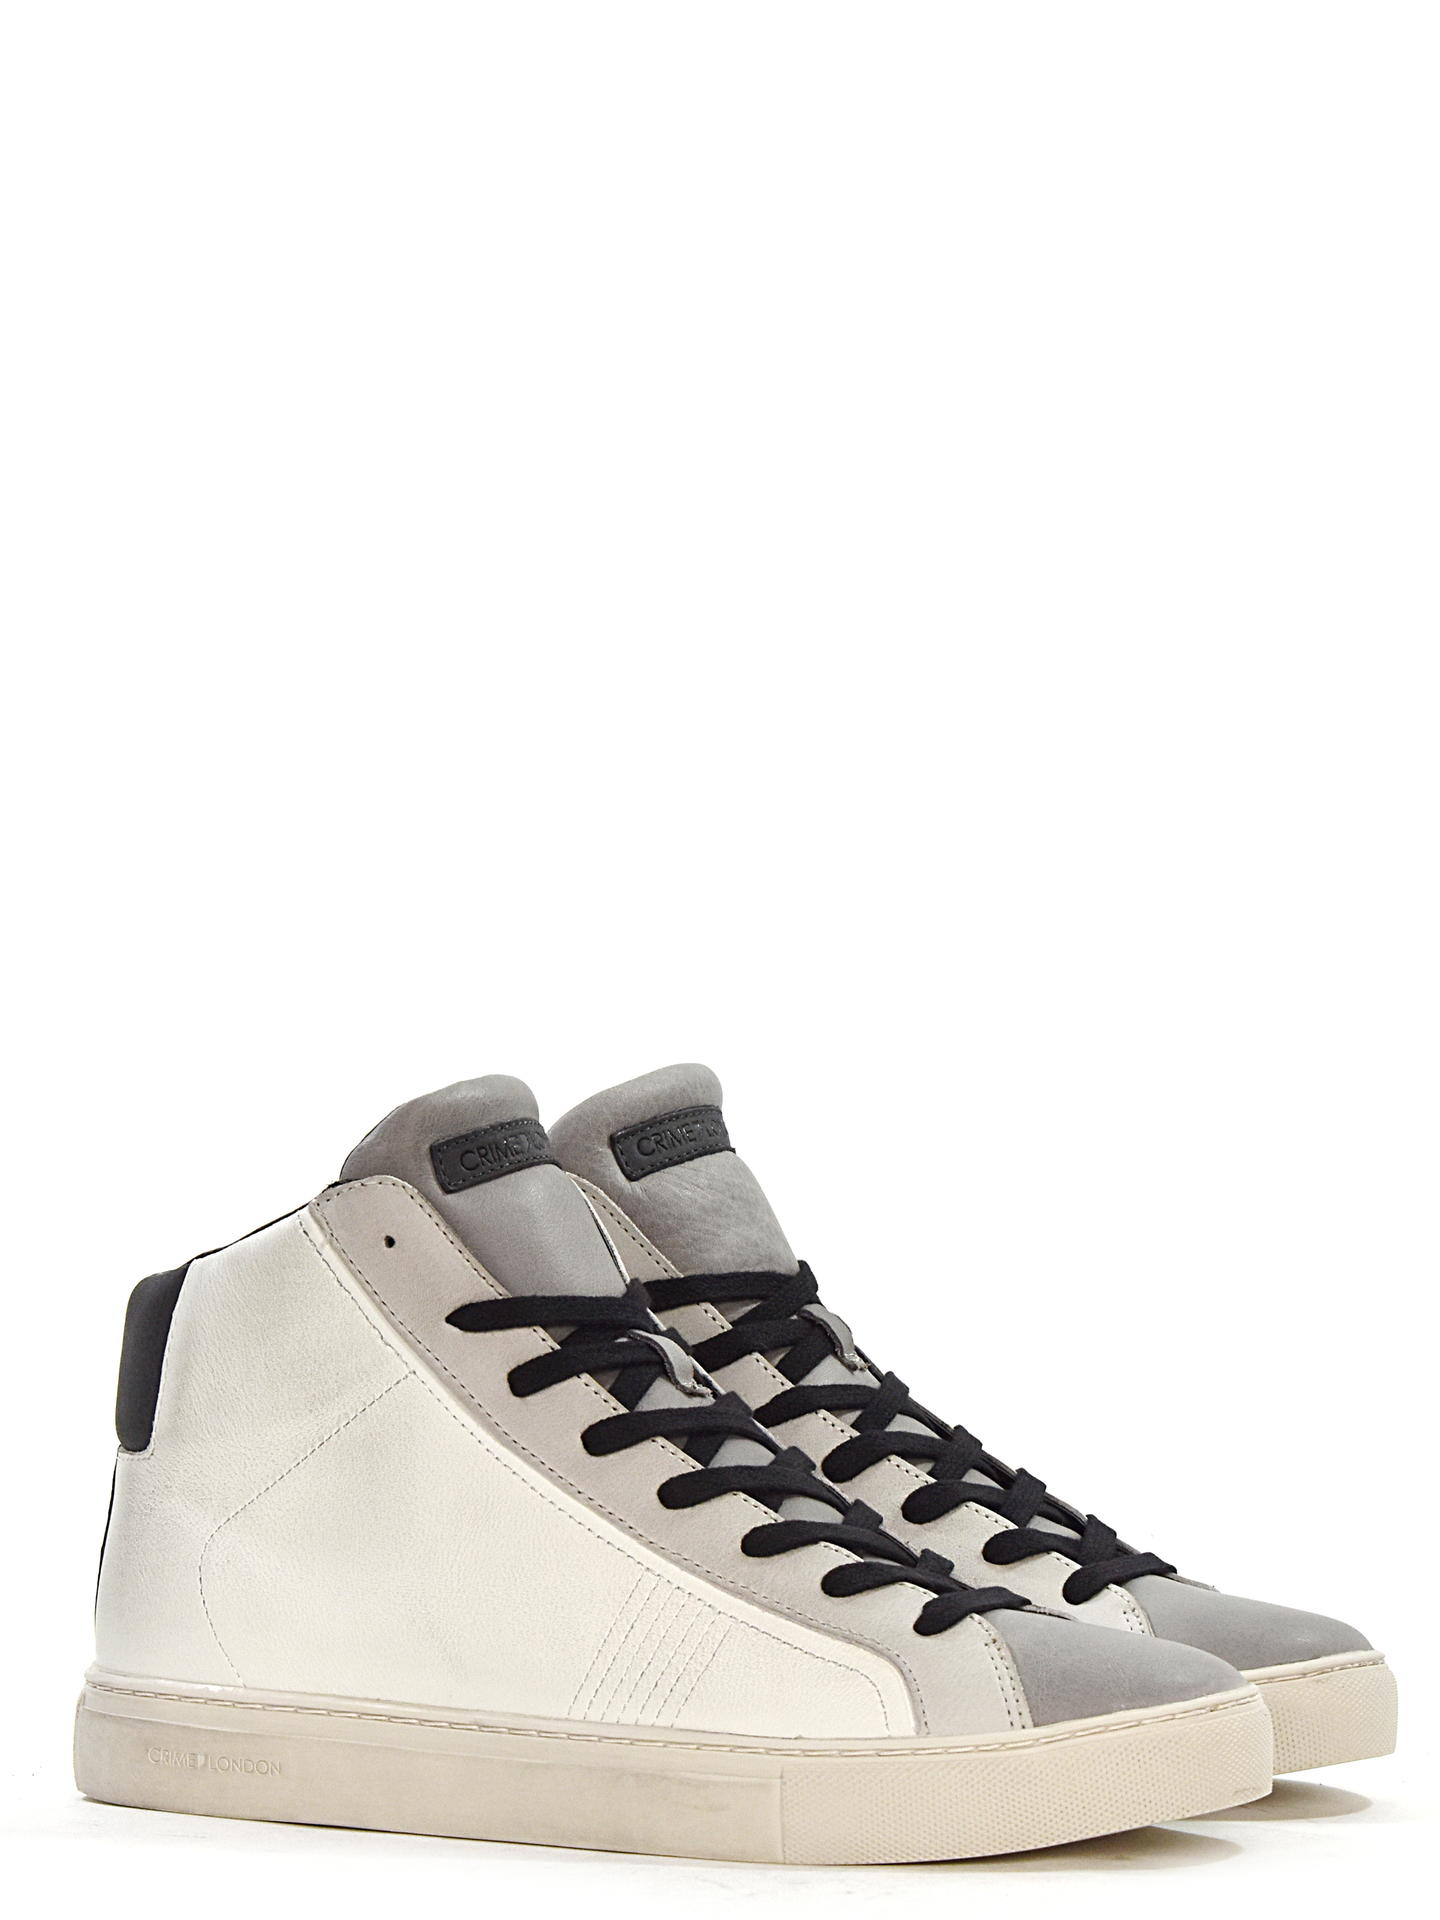 SNEAKERS CRIME LONDON 11653 BIANCO